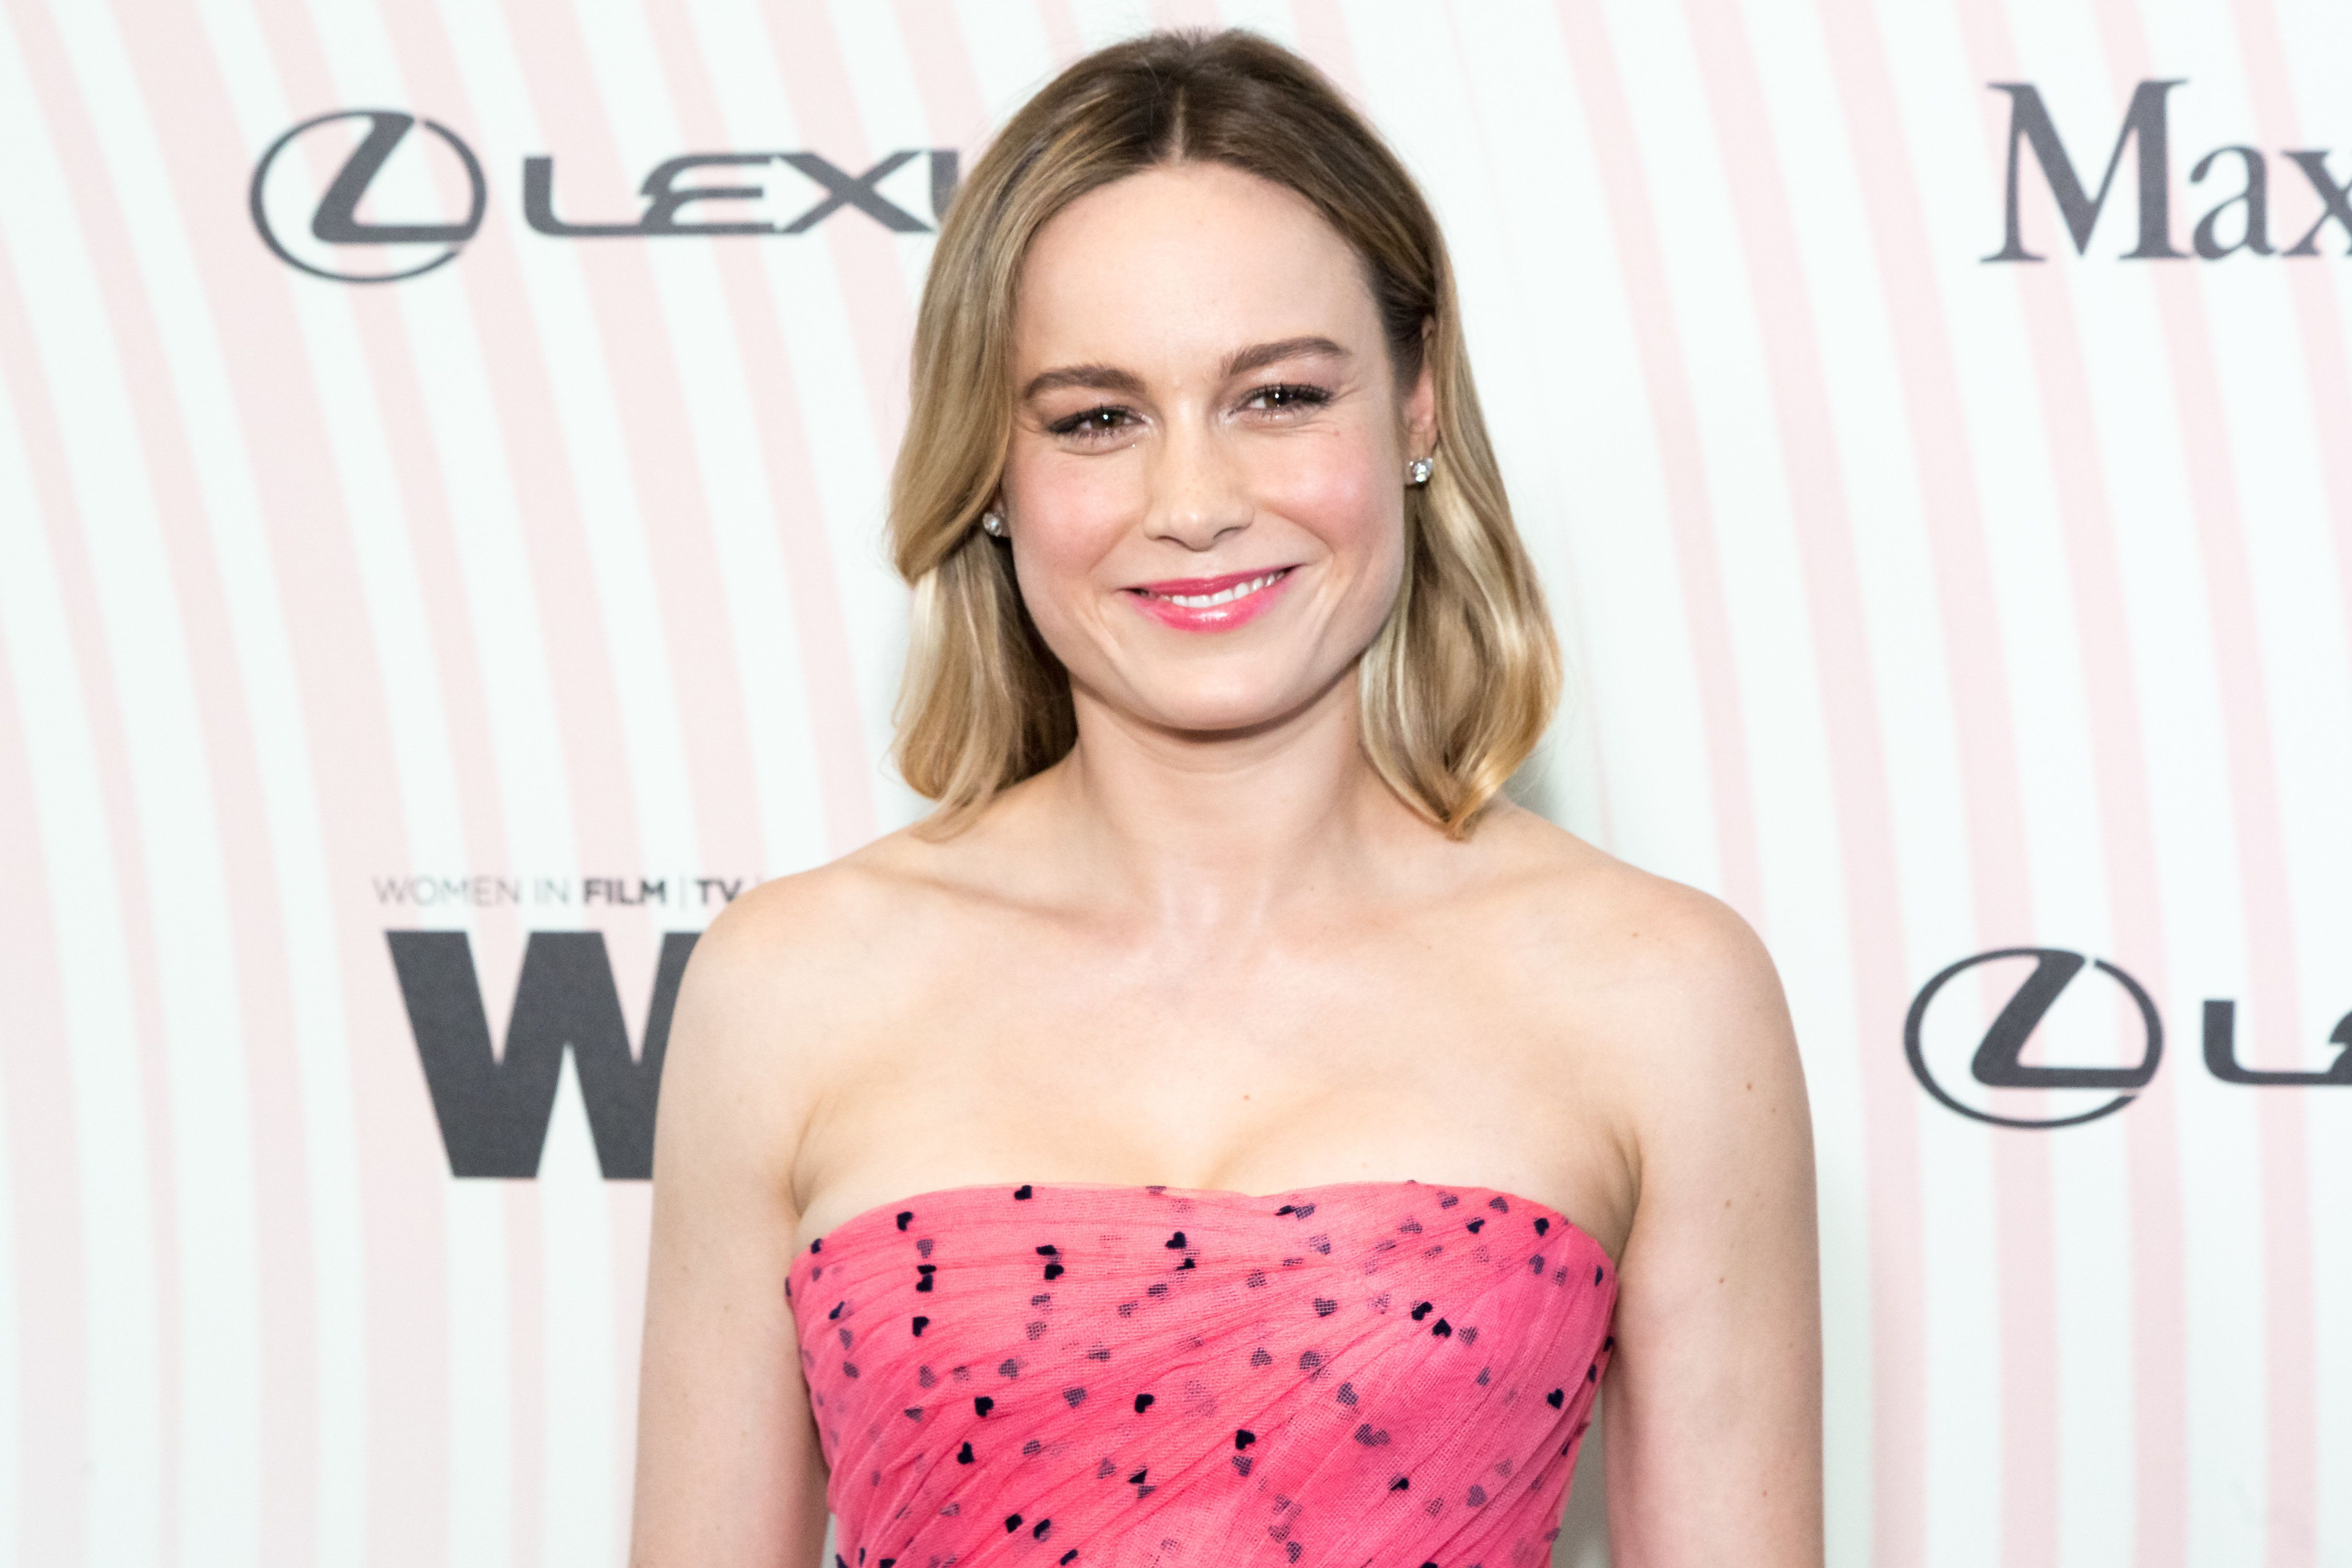 BEVERLY HILLS, CA - JUNE 13:  Brie Larson attends Women In Film 2018 Crystal + Lucy Award at The Beverly Hilton Hotel on June 13, 2018 in Beverly Hills, California.  (Photo by Greg Doherty/Patrick McMullan via Getty Images)